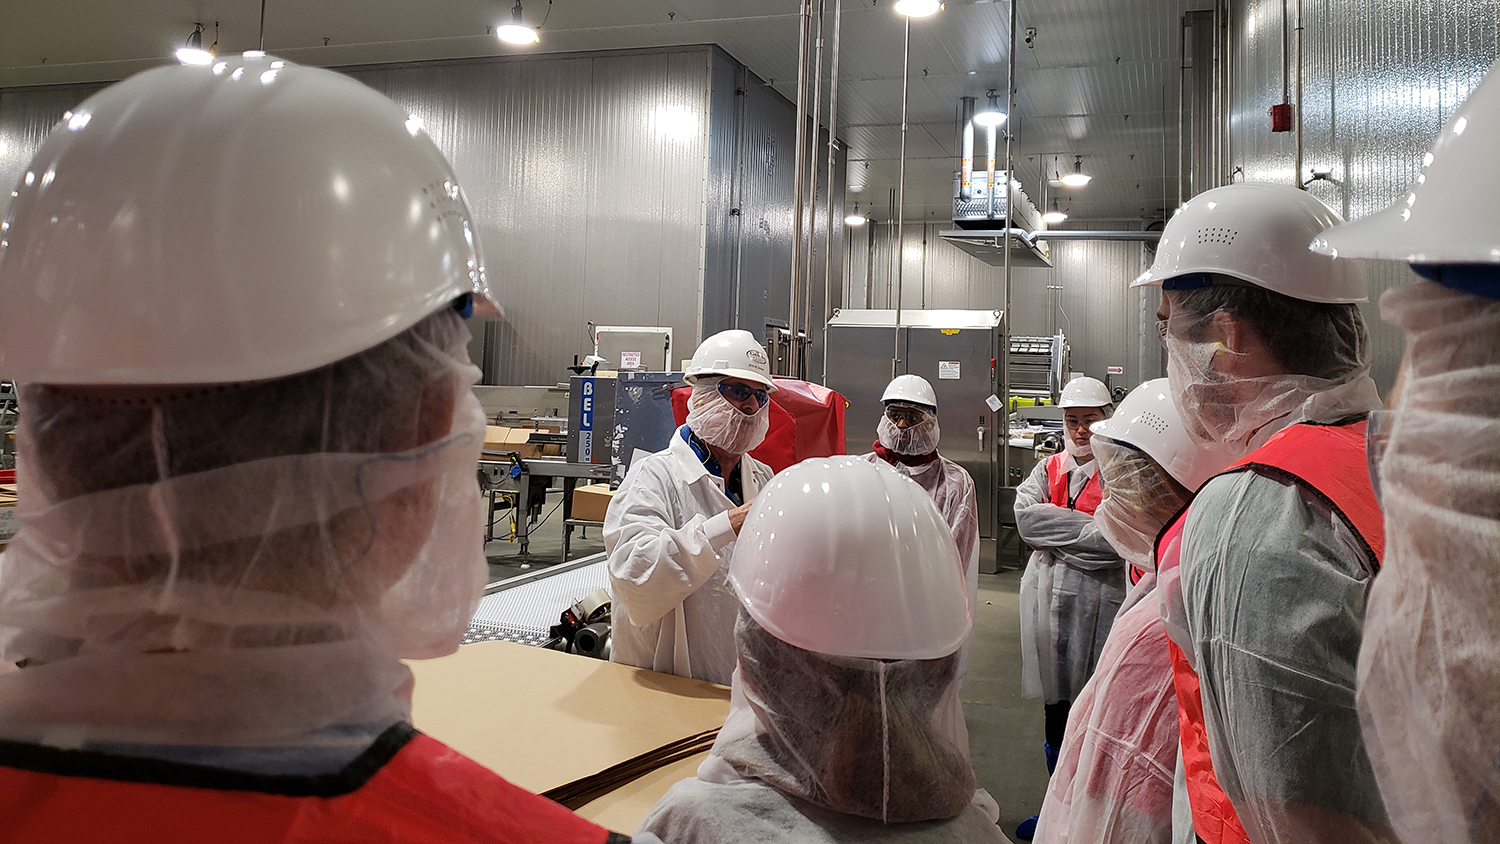 students in health and safety gear listen to a guide in a poultry processing plant